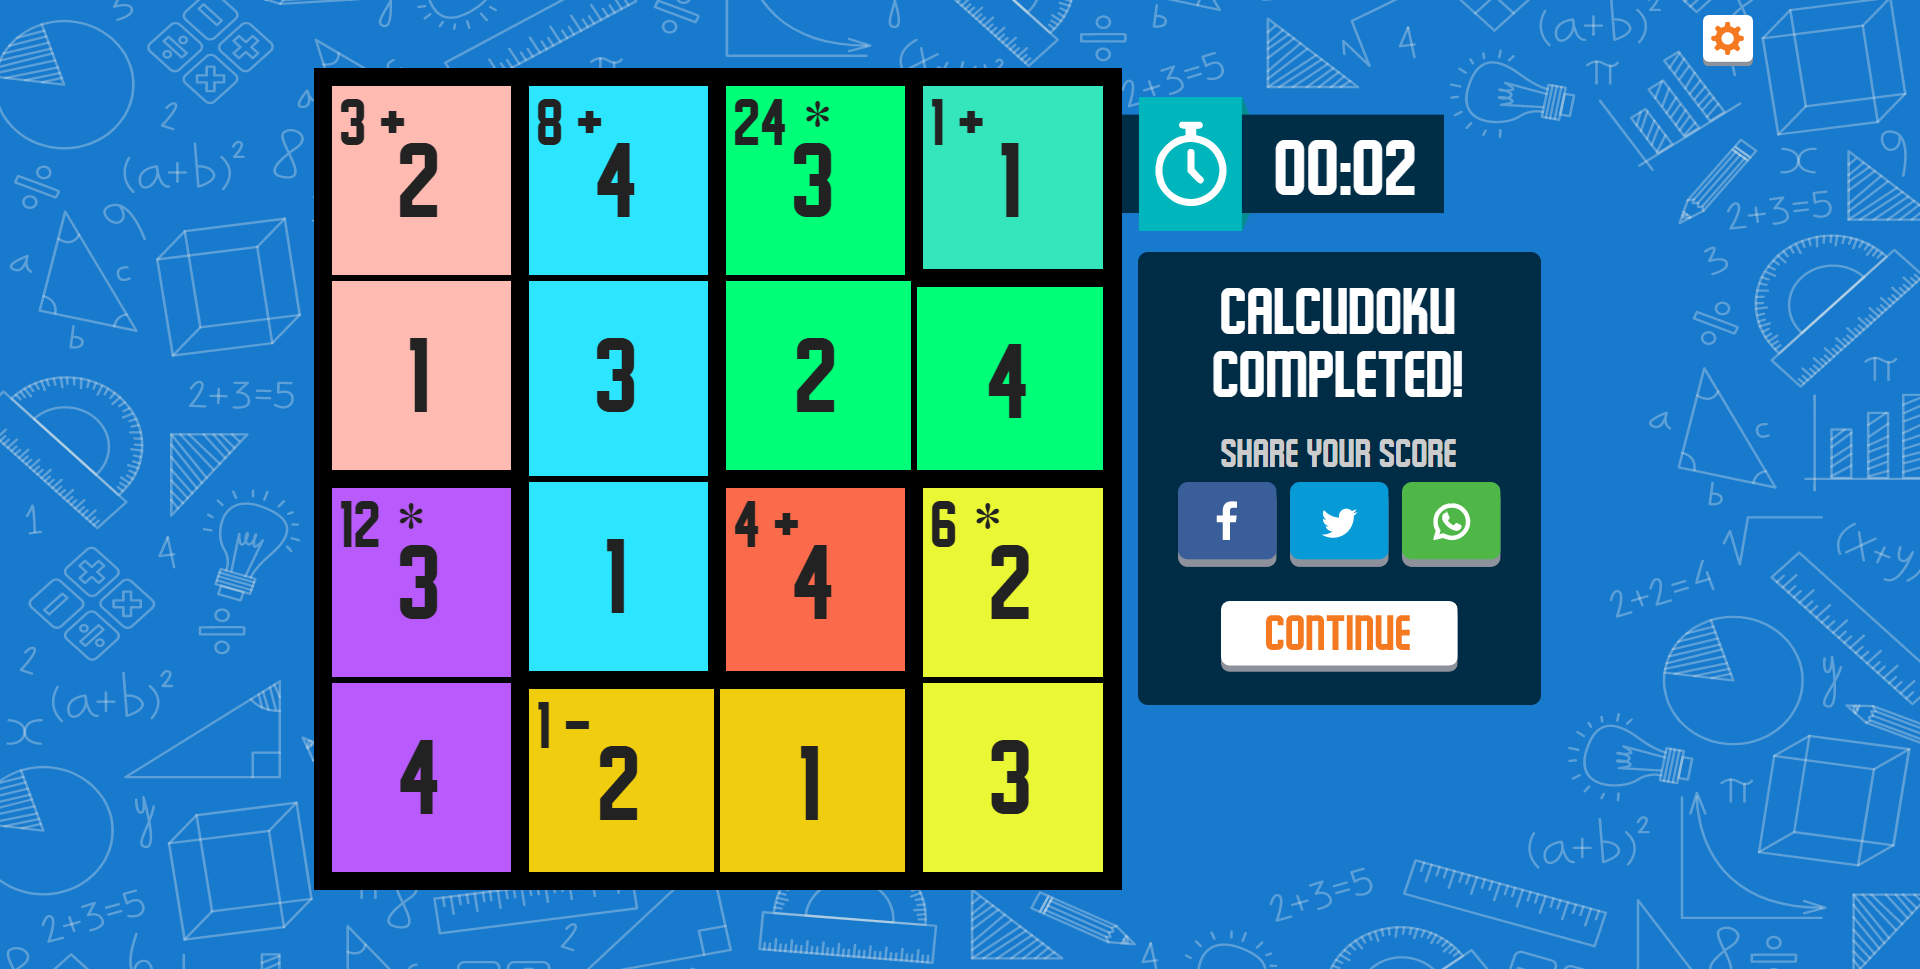 CalcuDoku Game Completed Screenshot.